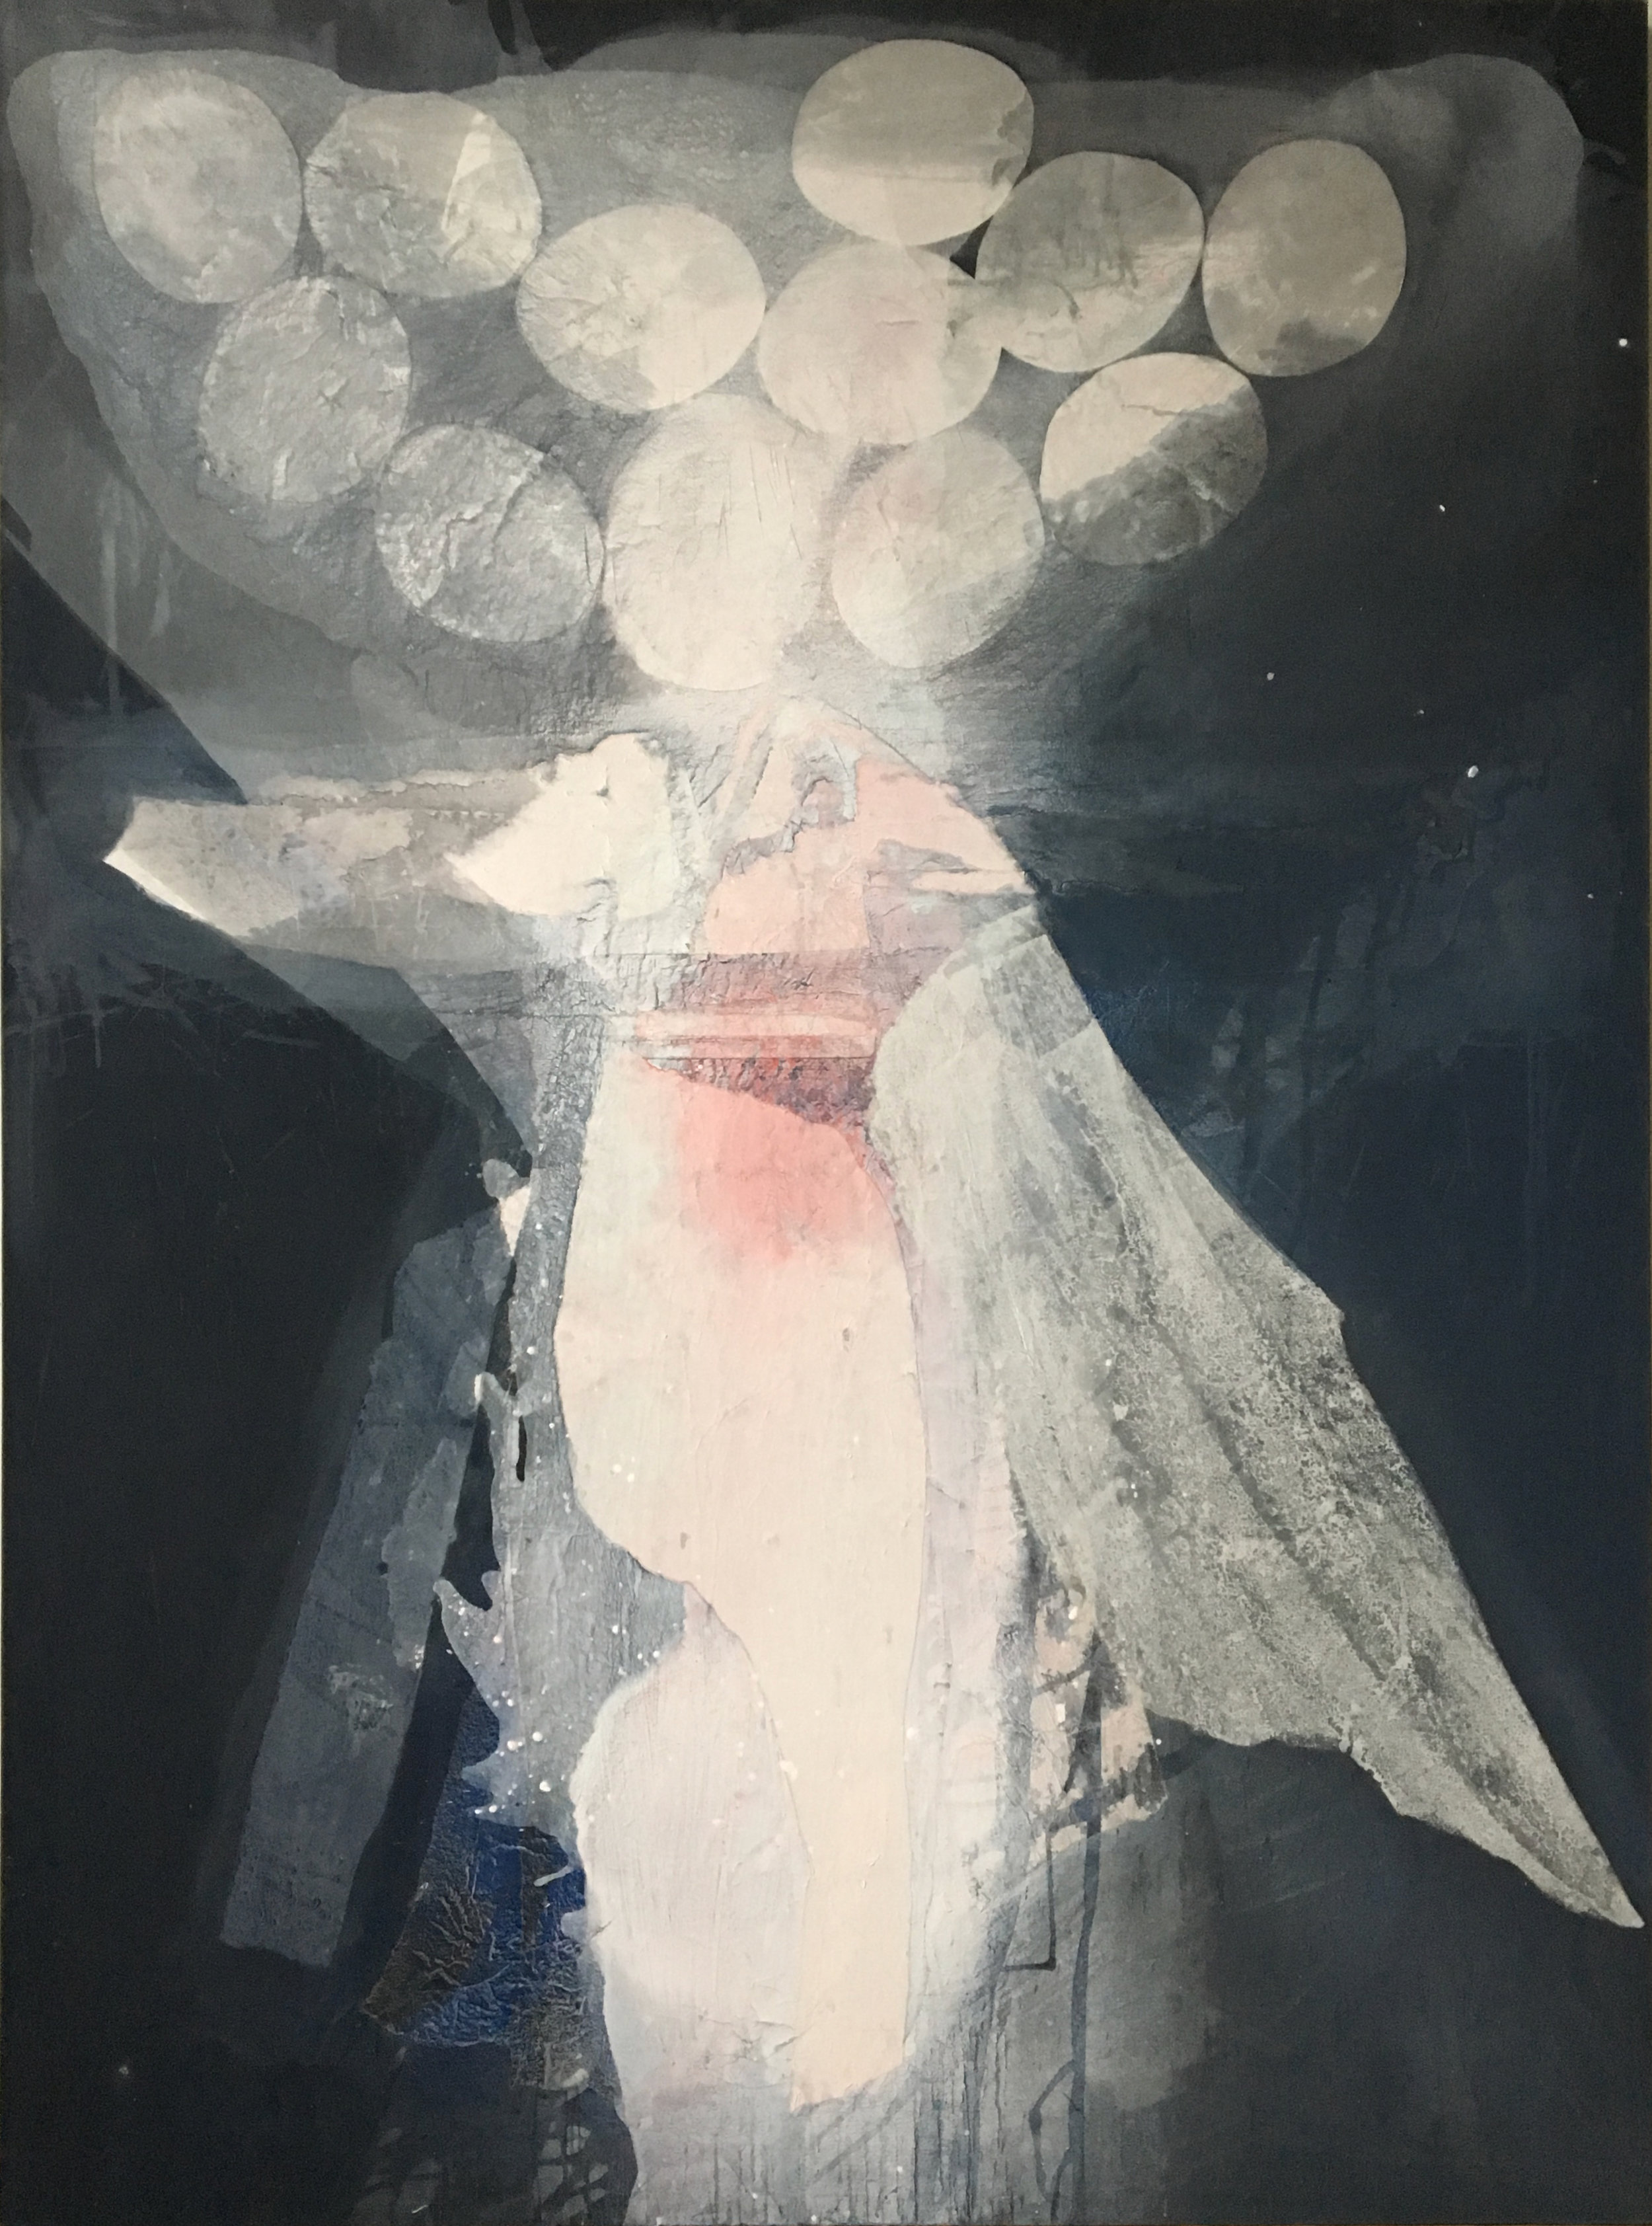 SoHyun Bae, Wrapped Shards: Egg Woman V, 2003, rice-paper and pure pigment on canvas, 81 x 60 inches